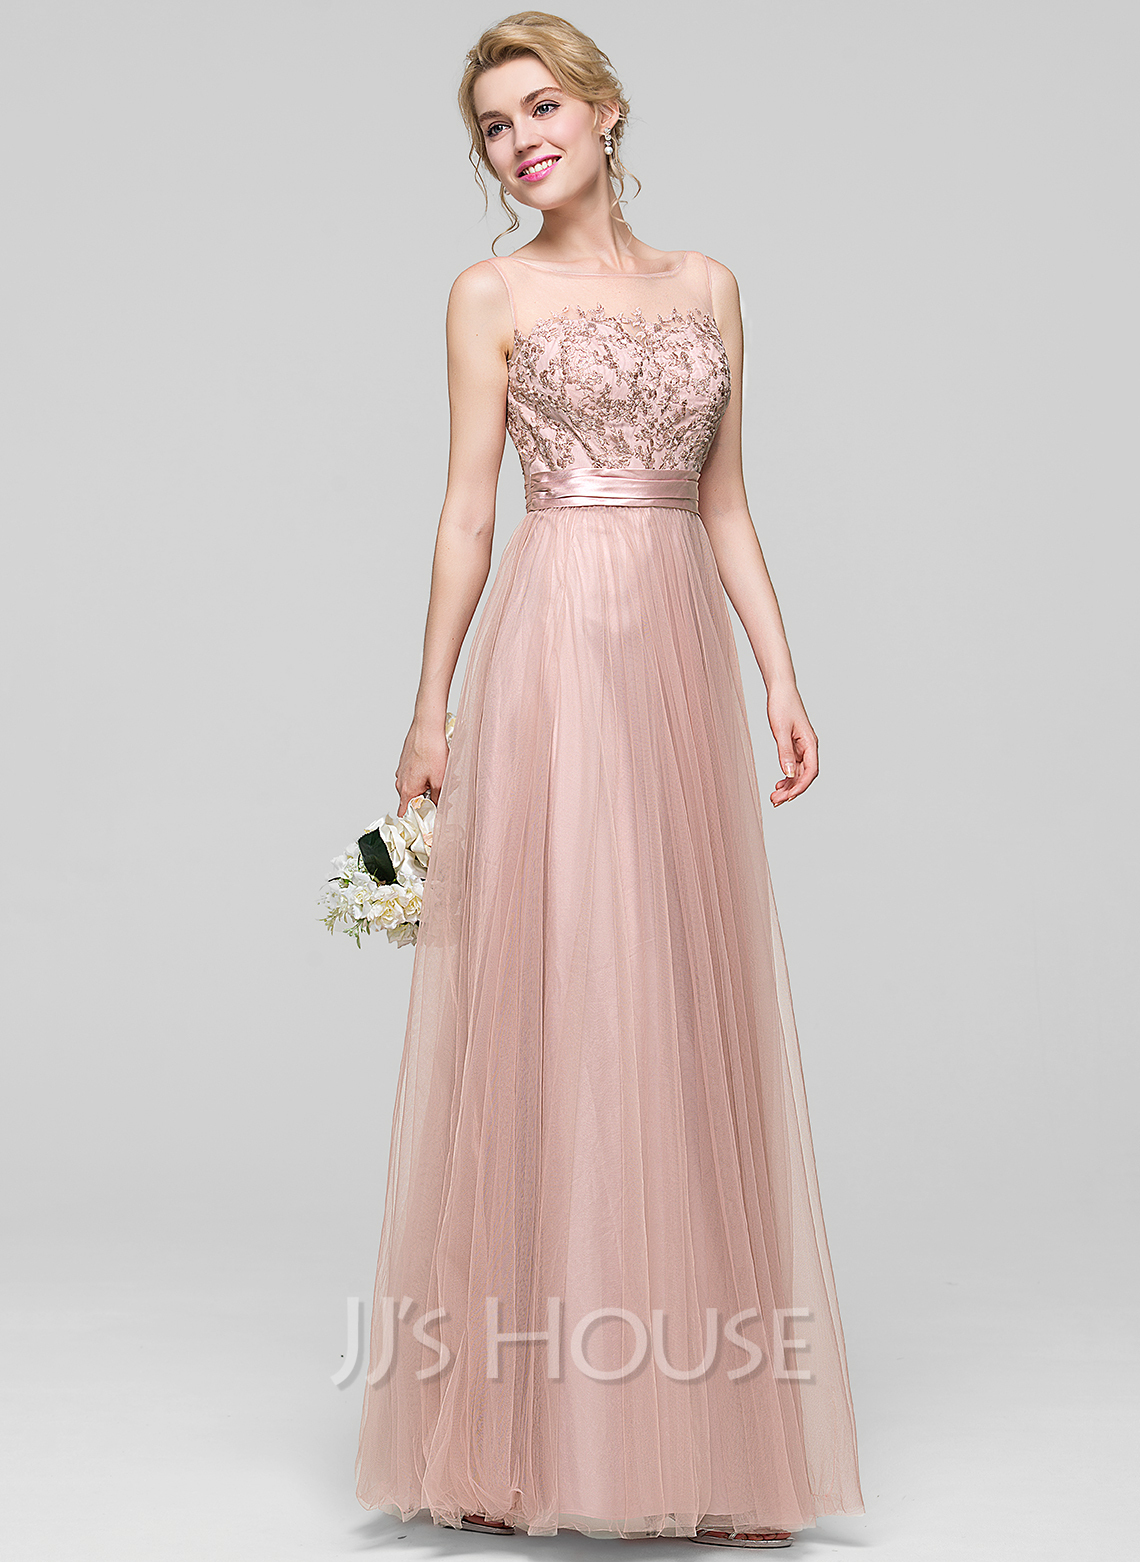 Scoop Neck Floor-Length Tulle Bridesmaid Dress With Ruffle